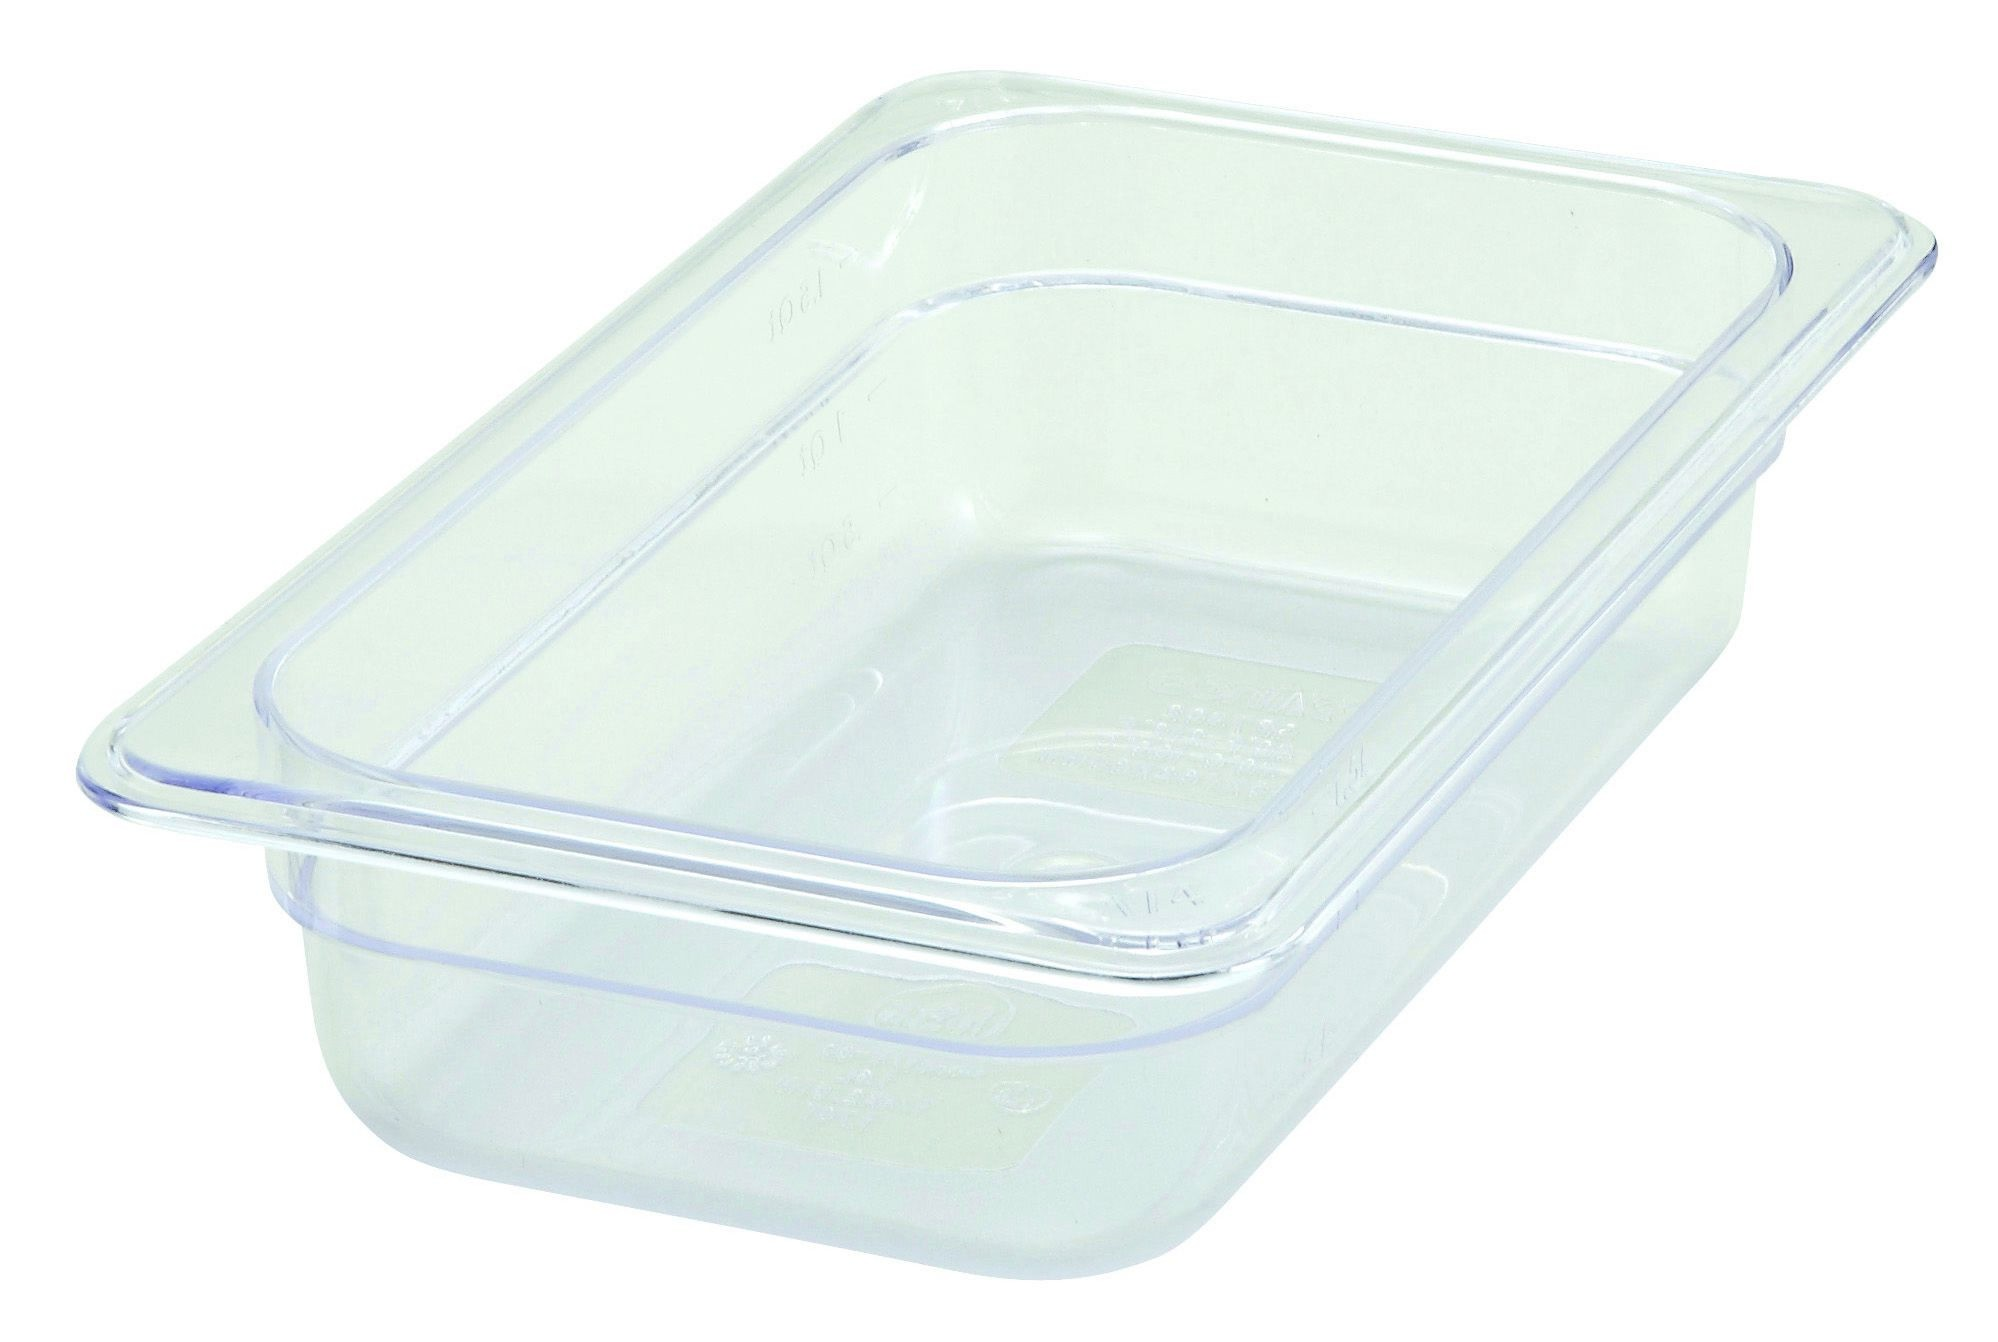 Polycarbonate NSF One-Fourth Size Food Pan - 2-1/2 Deep